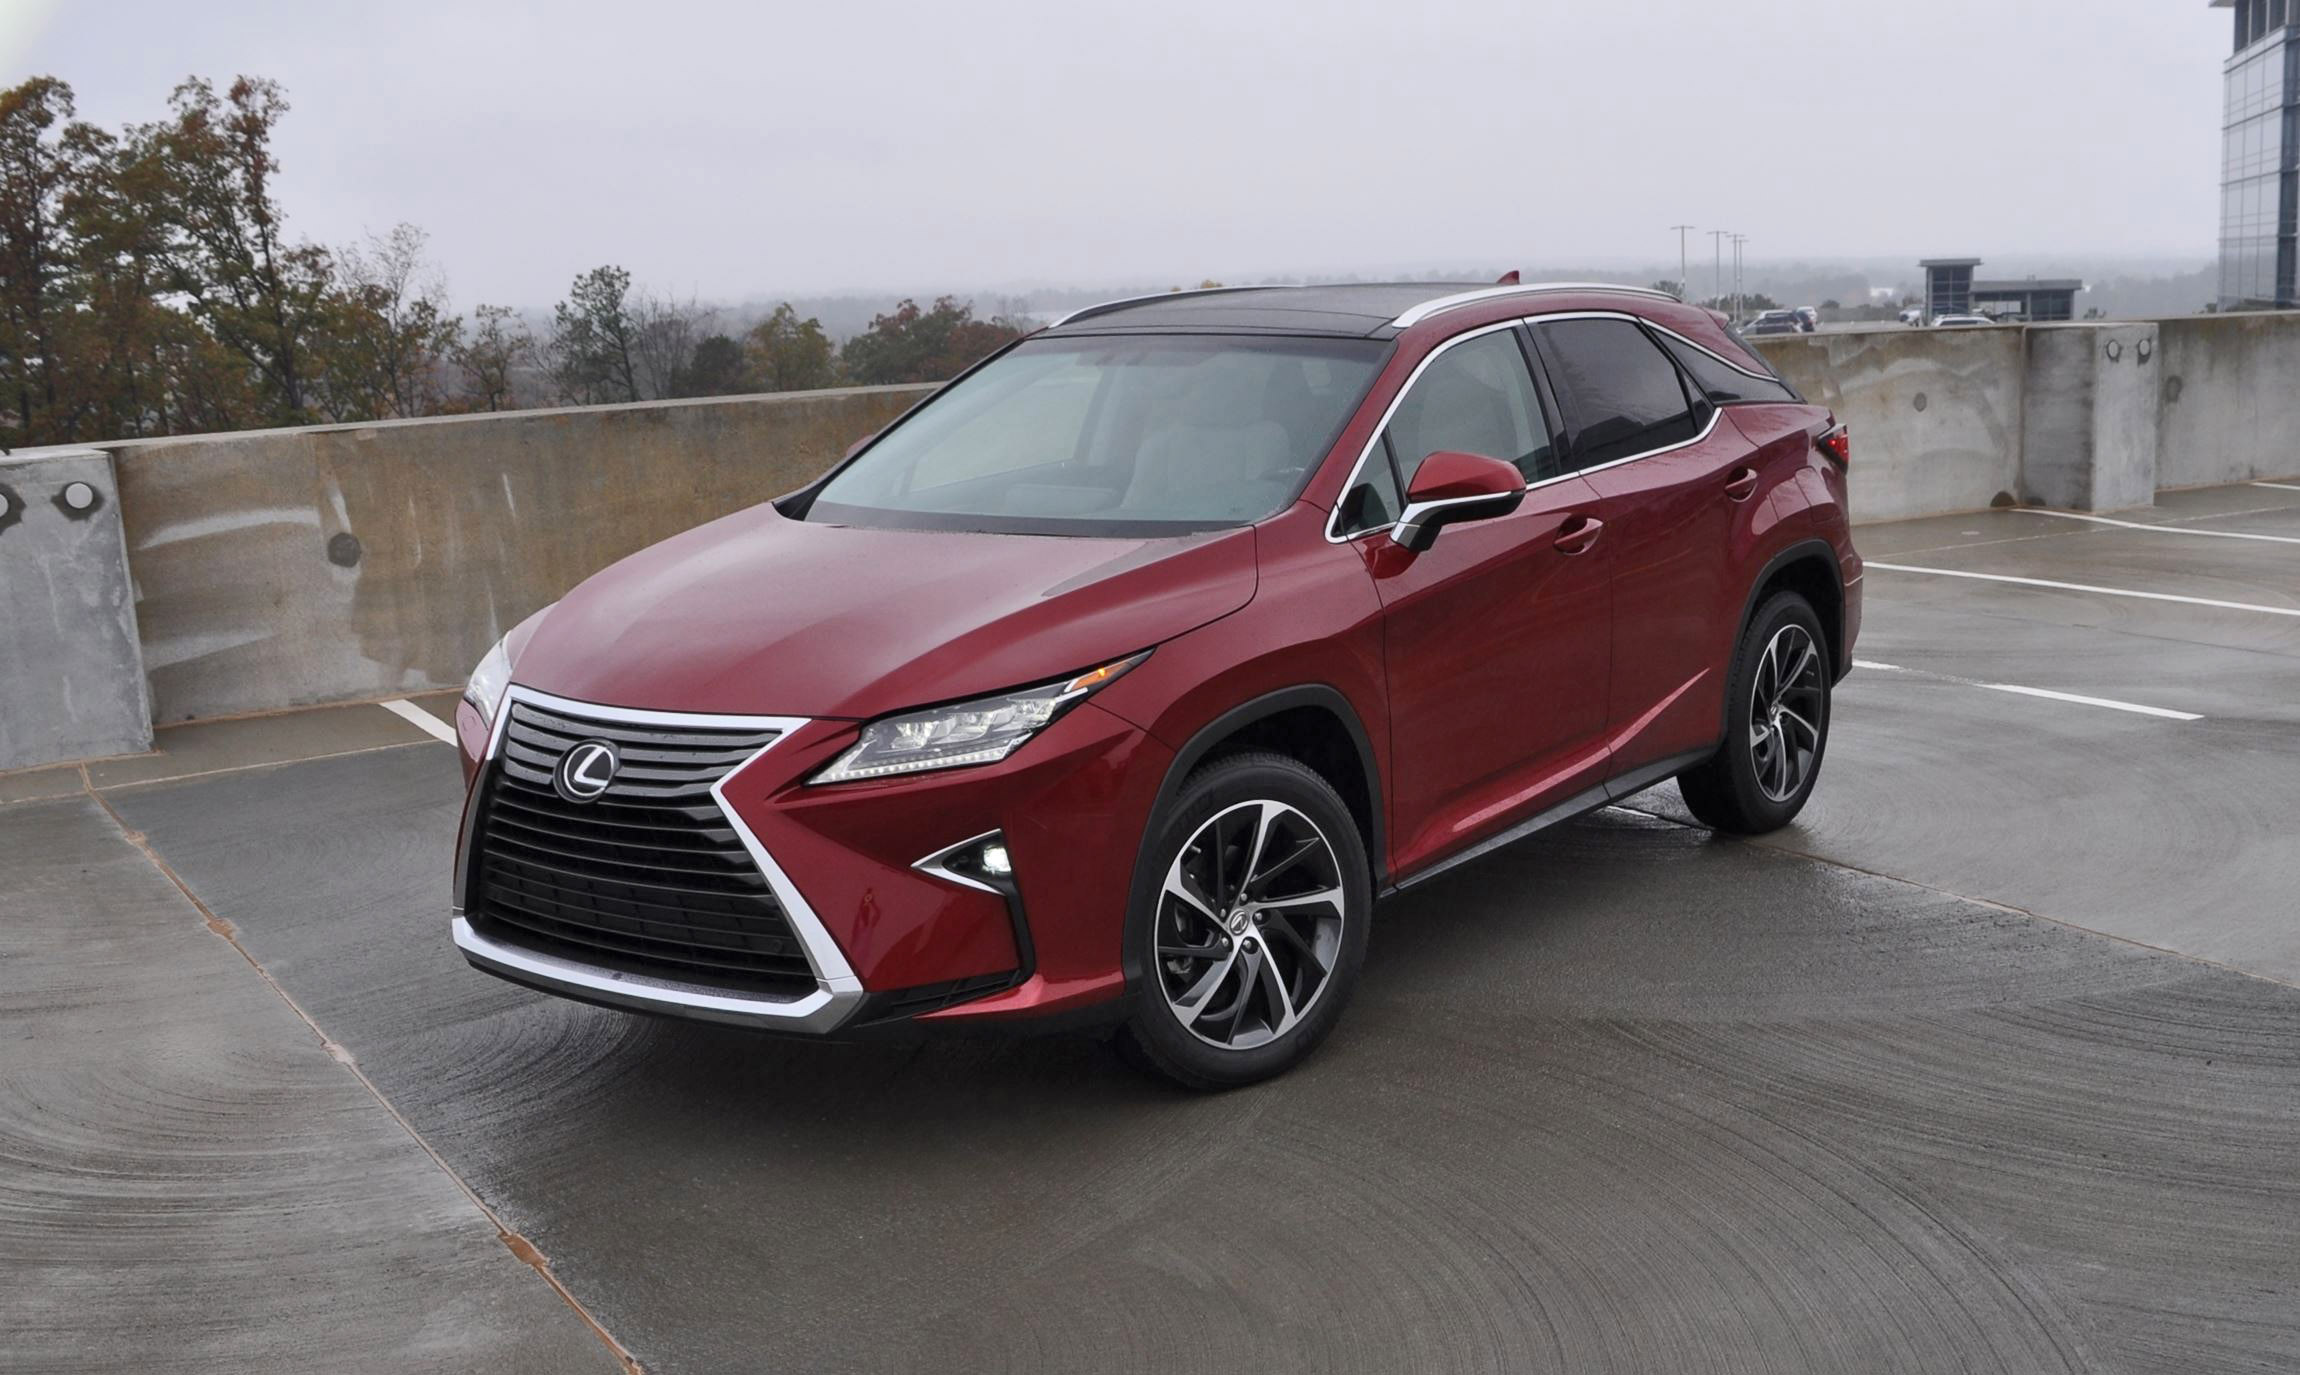 First Drive Review 2016 Lexus RX350 FWD Luxury Package 42